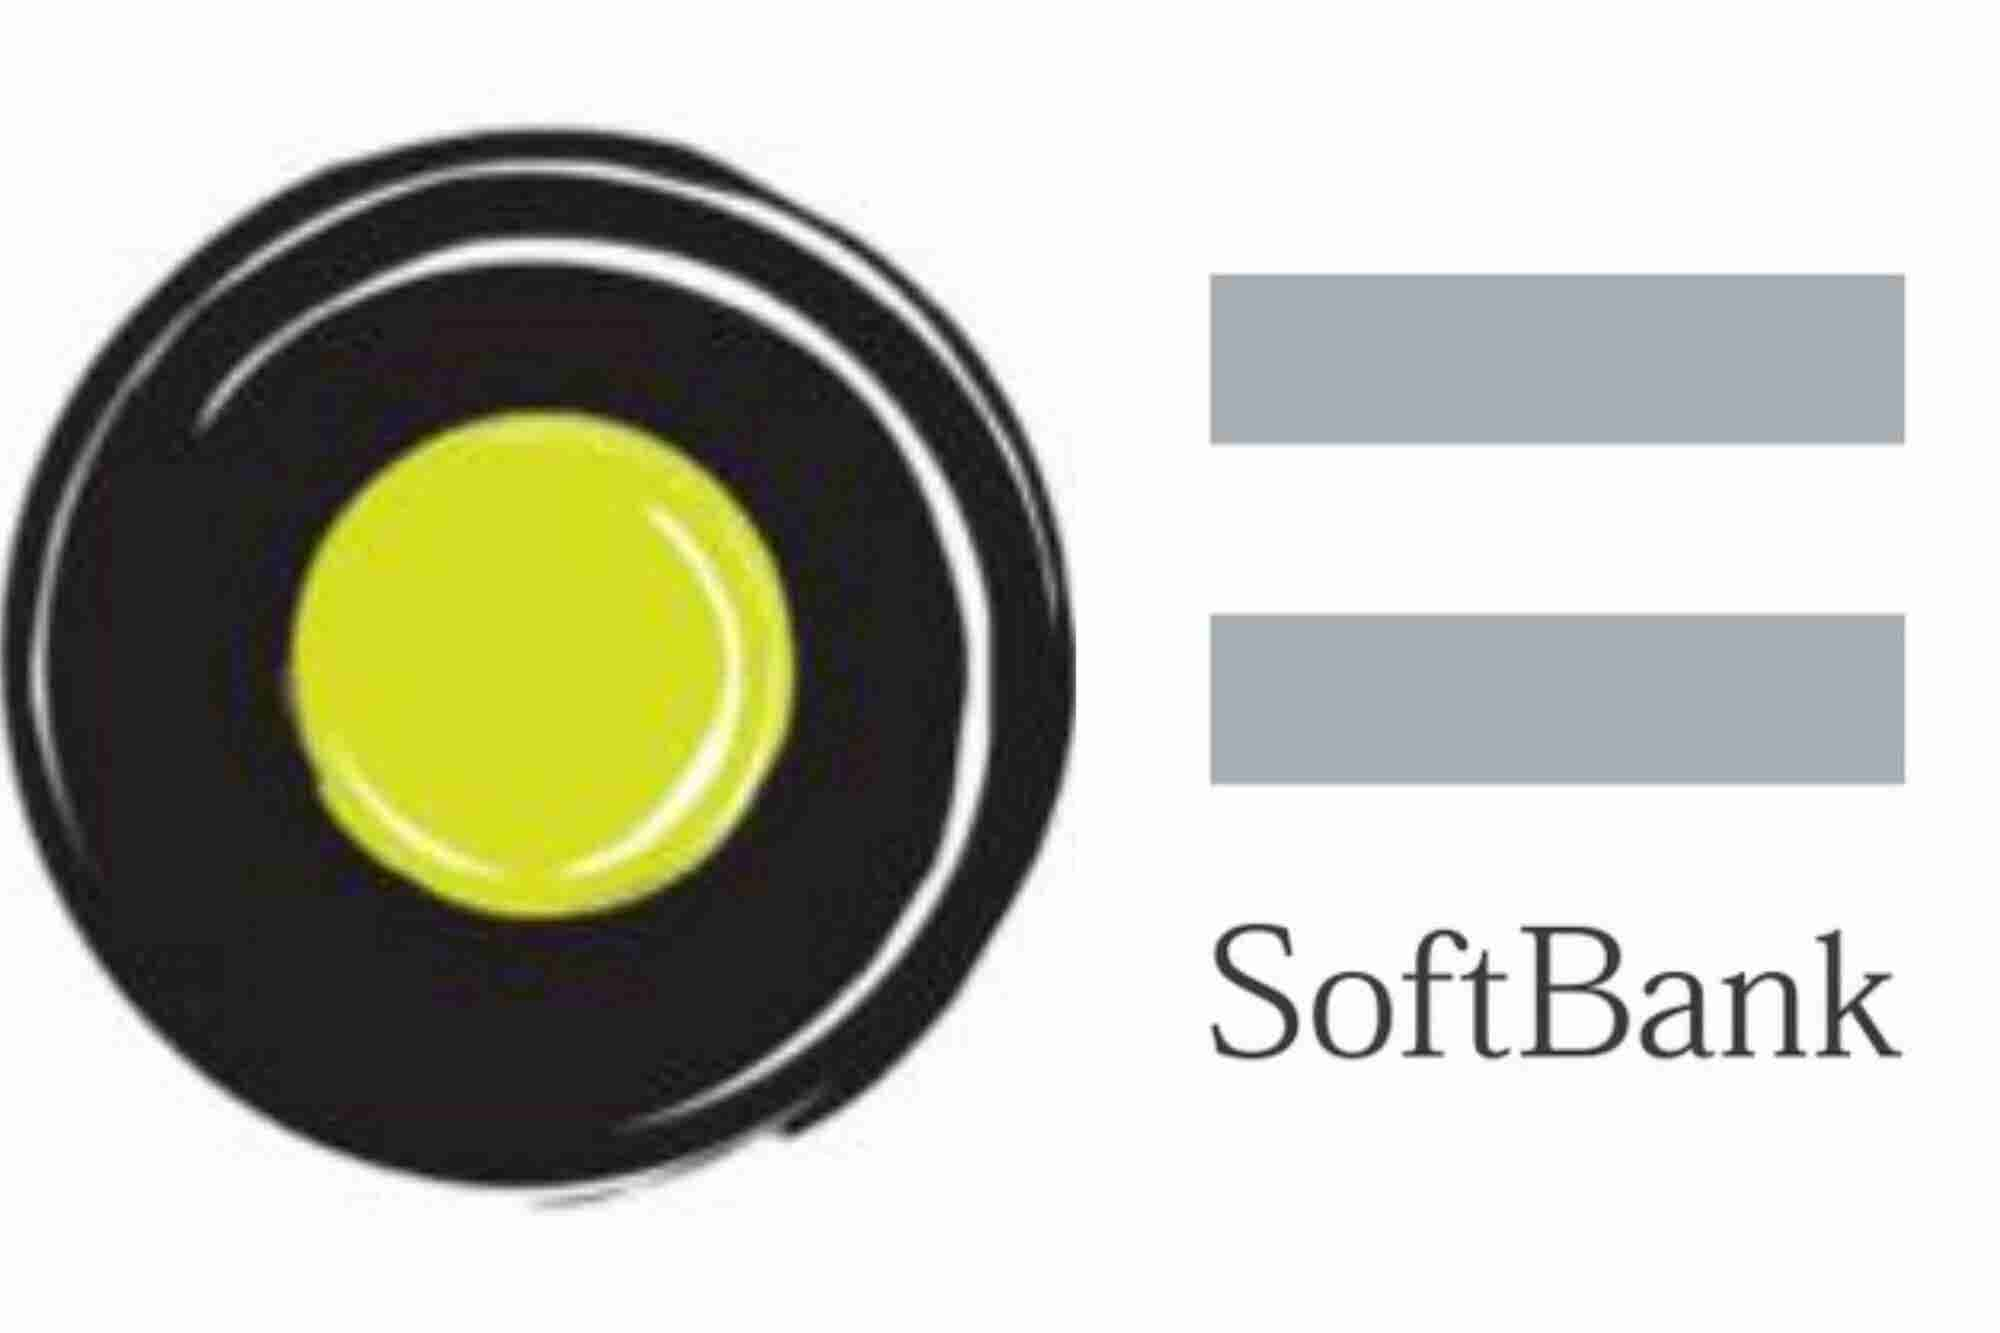 Ola's Dilemma Over SoftBank's Offer